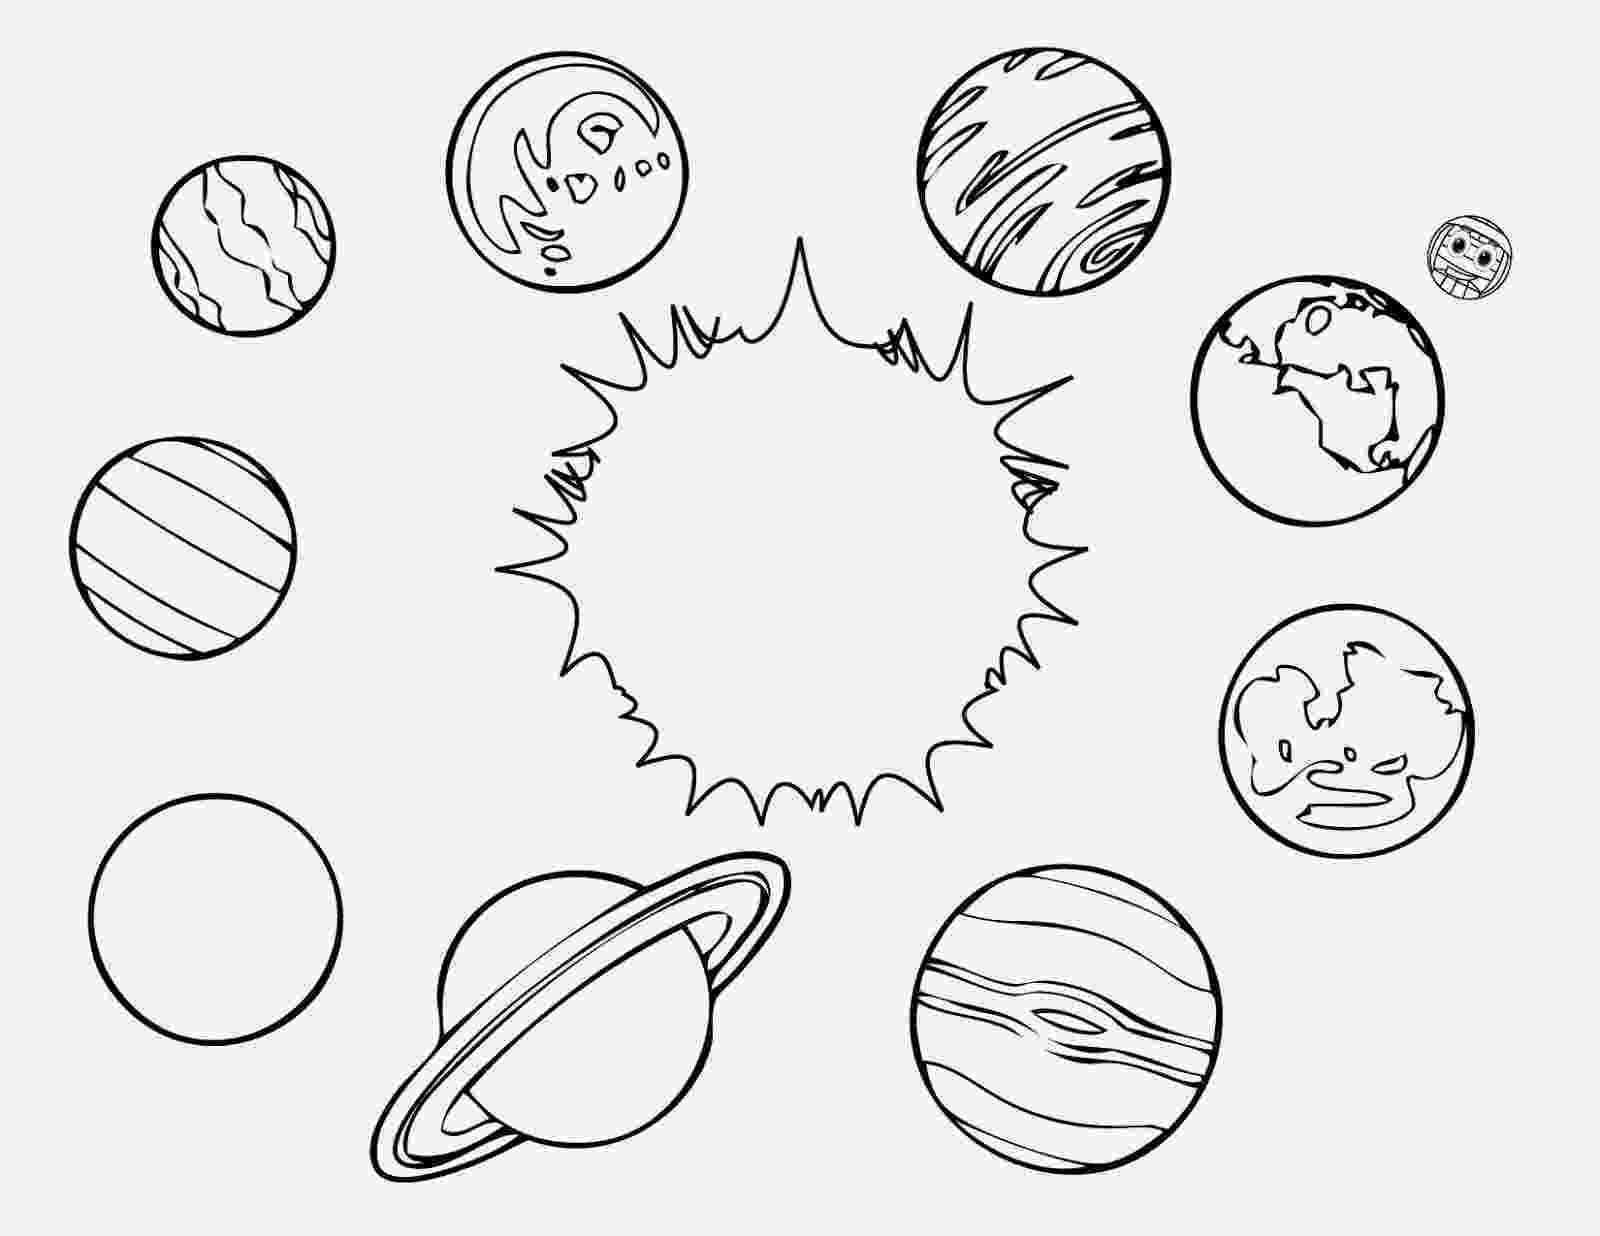 coloring pages planets free printable planet coloring pages for kids planets coloring pages